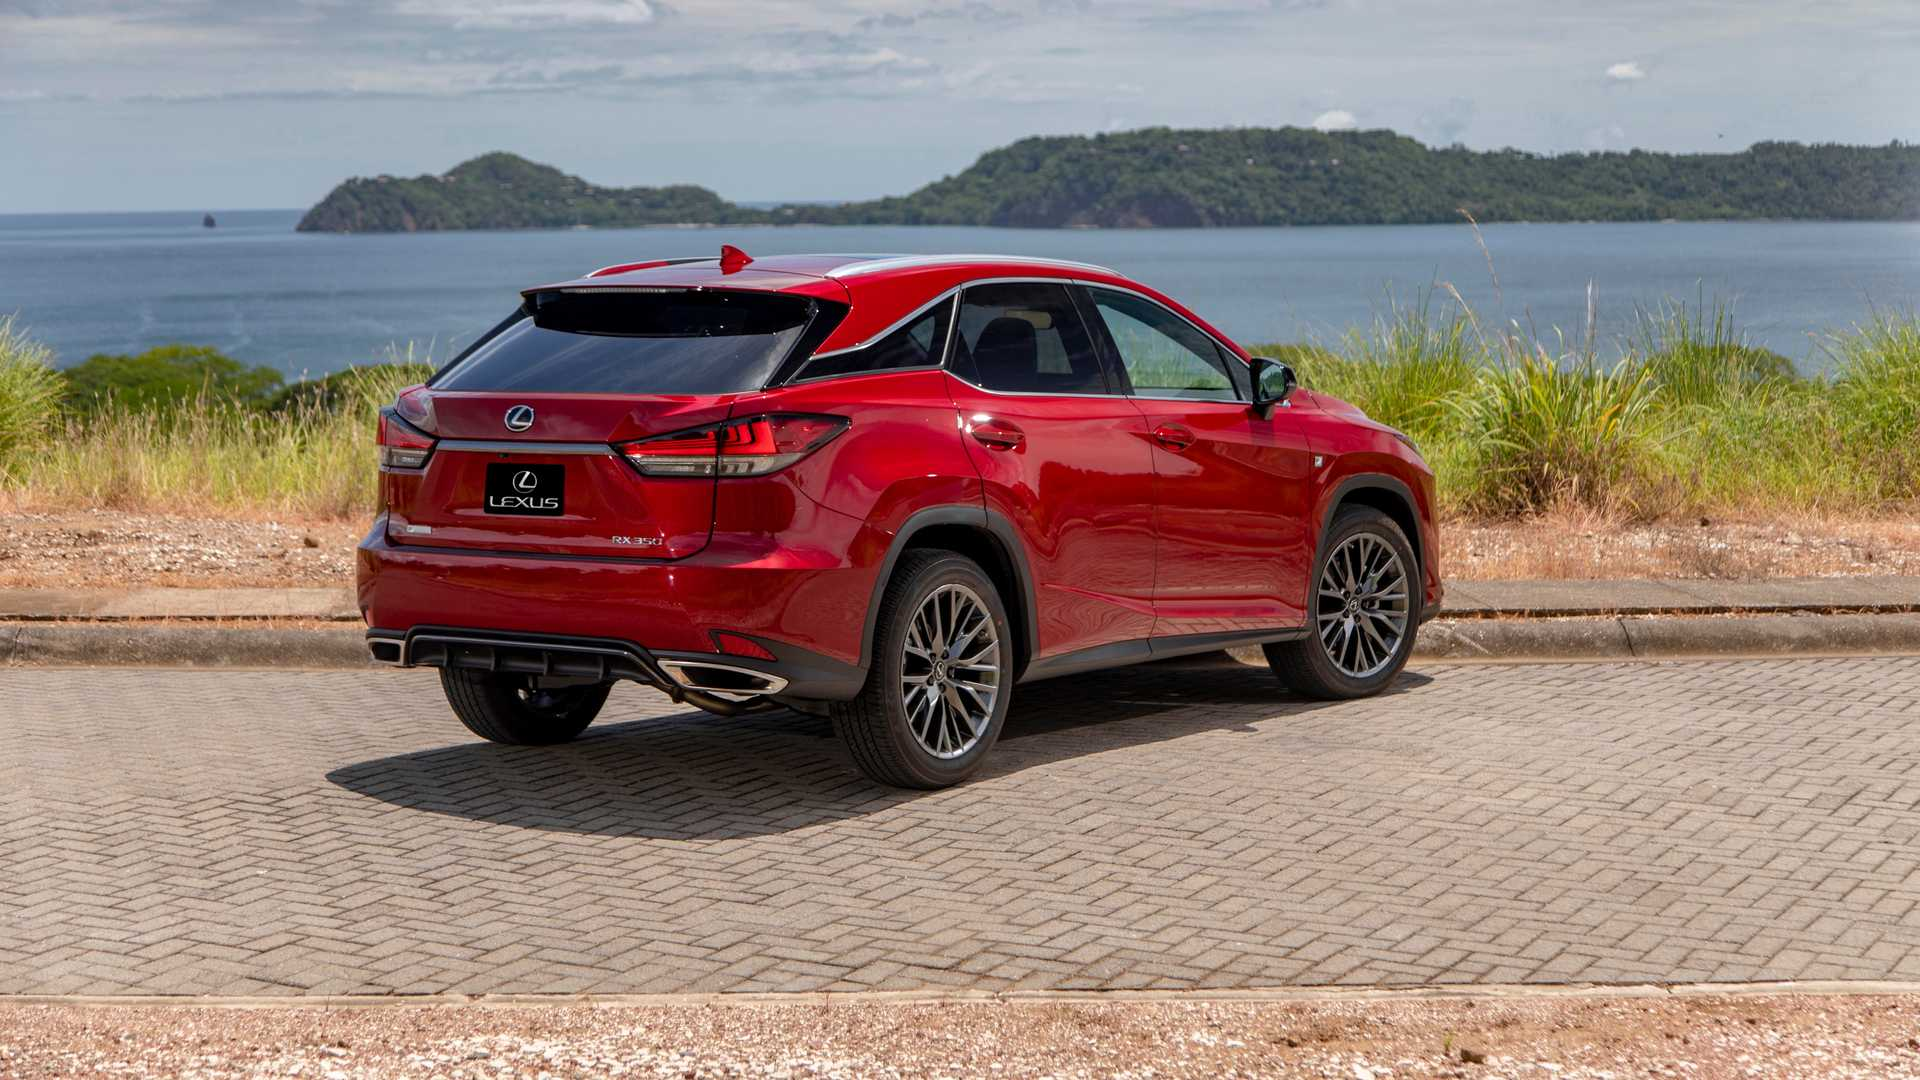 91 All New 2020 Lexus Tx 350 Wallpaper